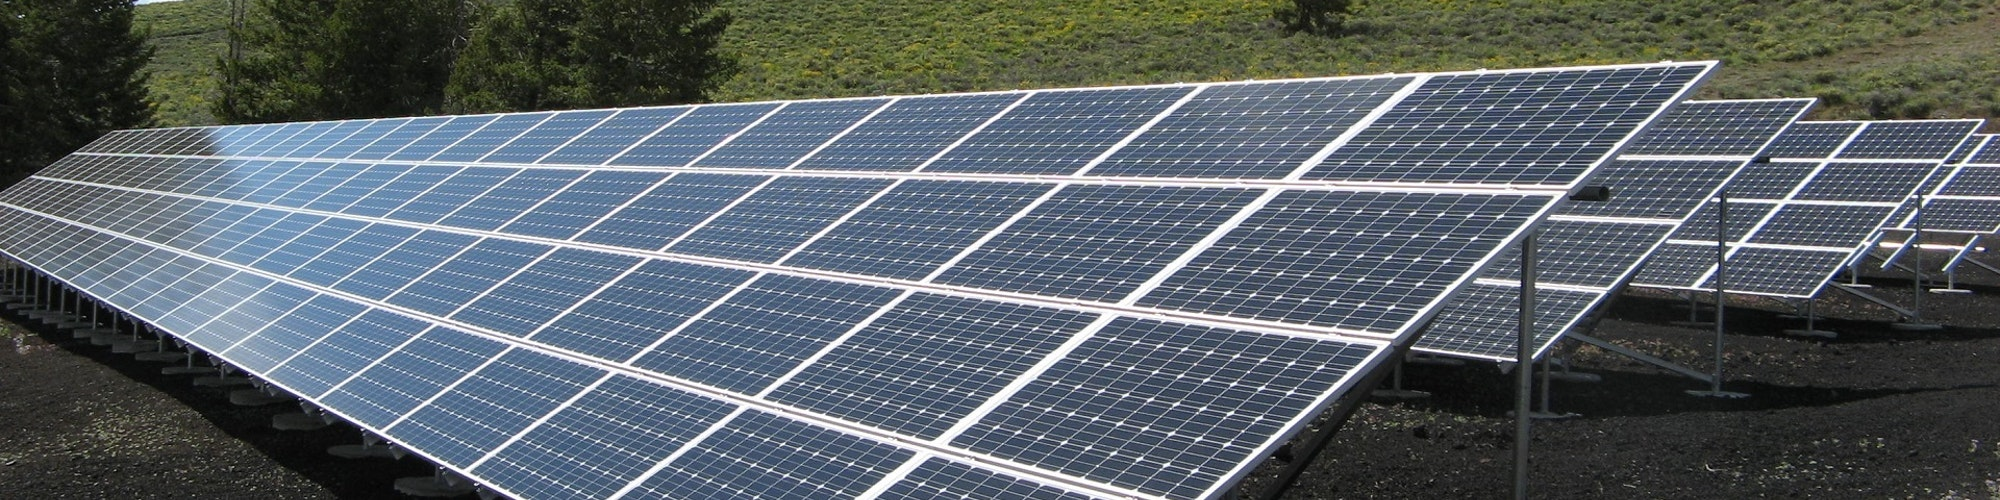 Collective selfconsumption of PV systems